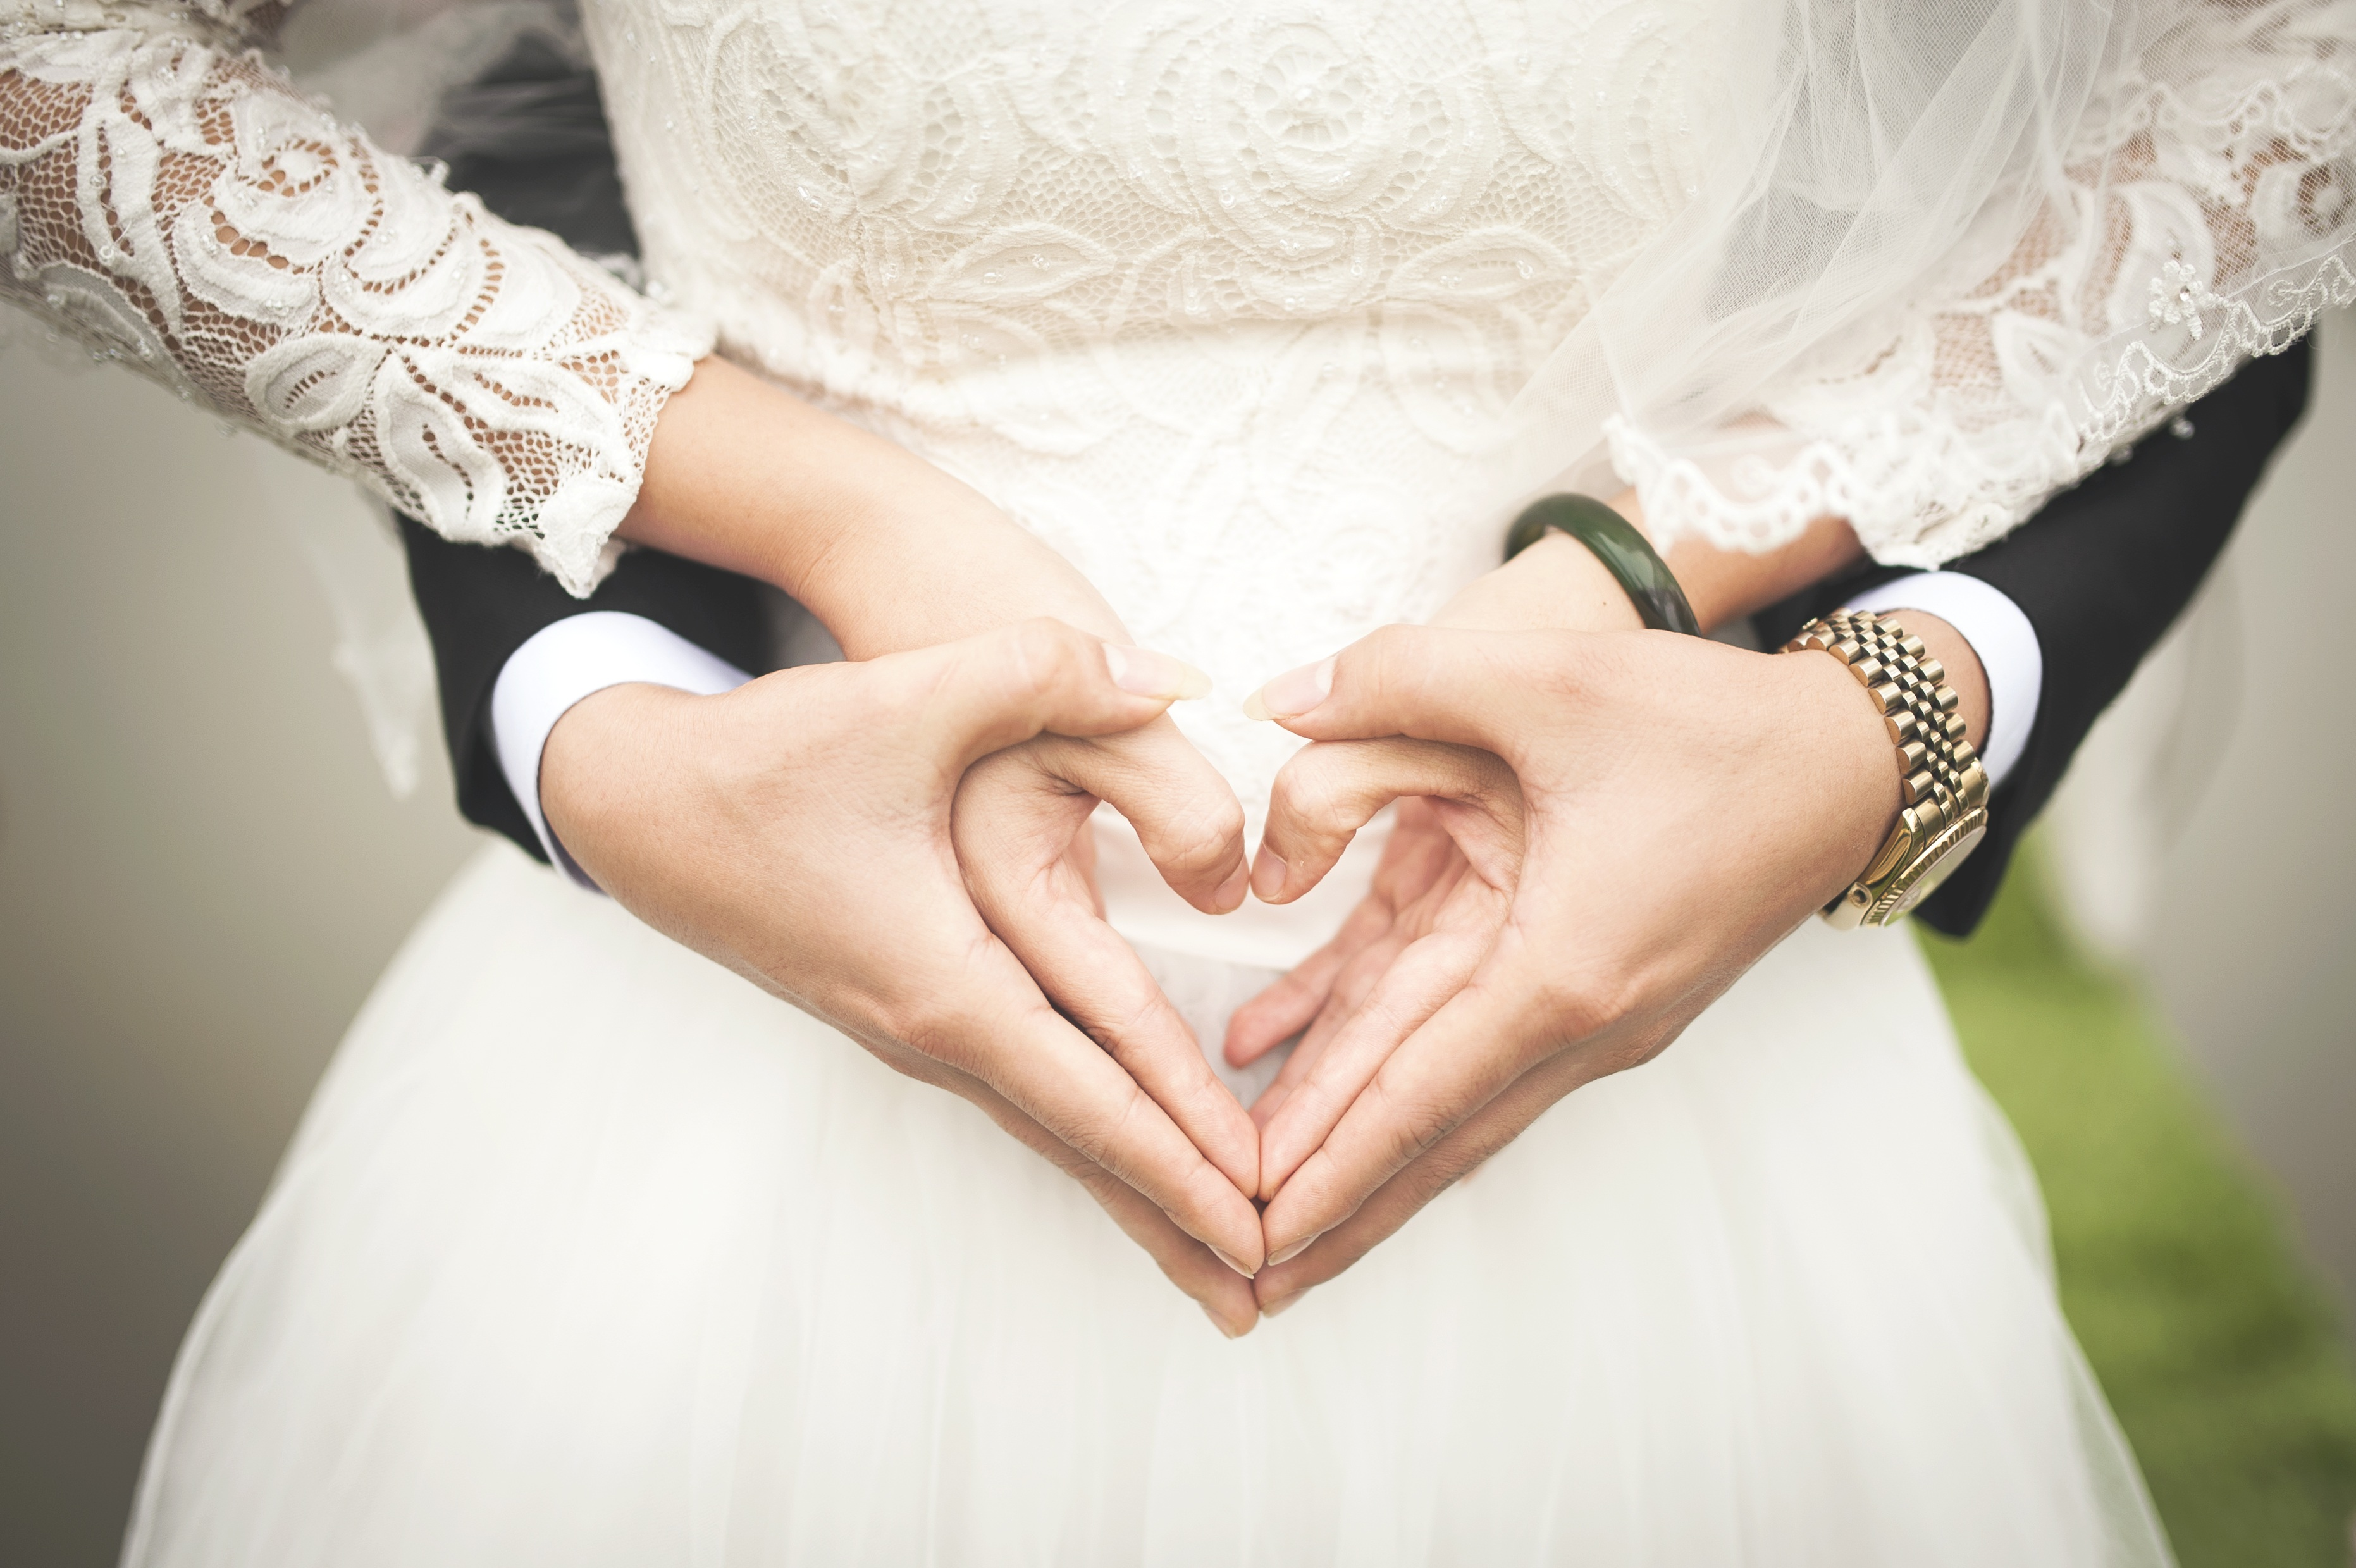 Free stock photos of wedding pexels midsection of woman making heart shape with hands junglespirit